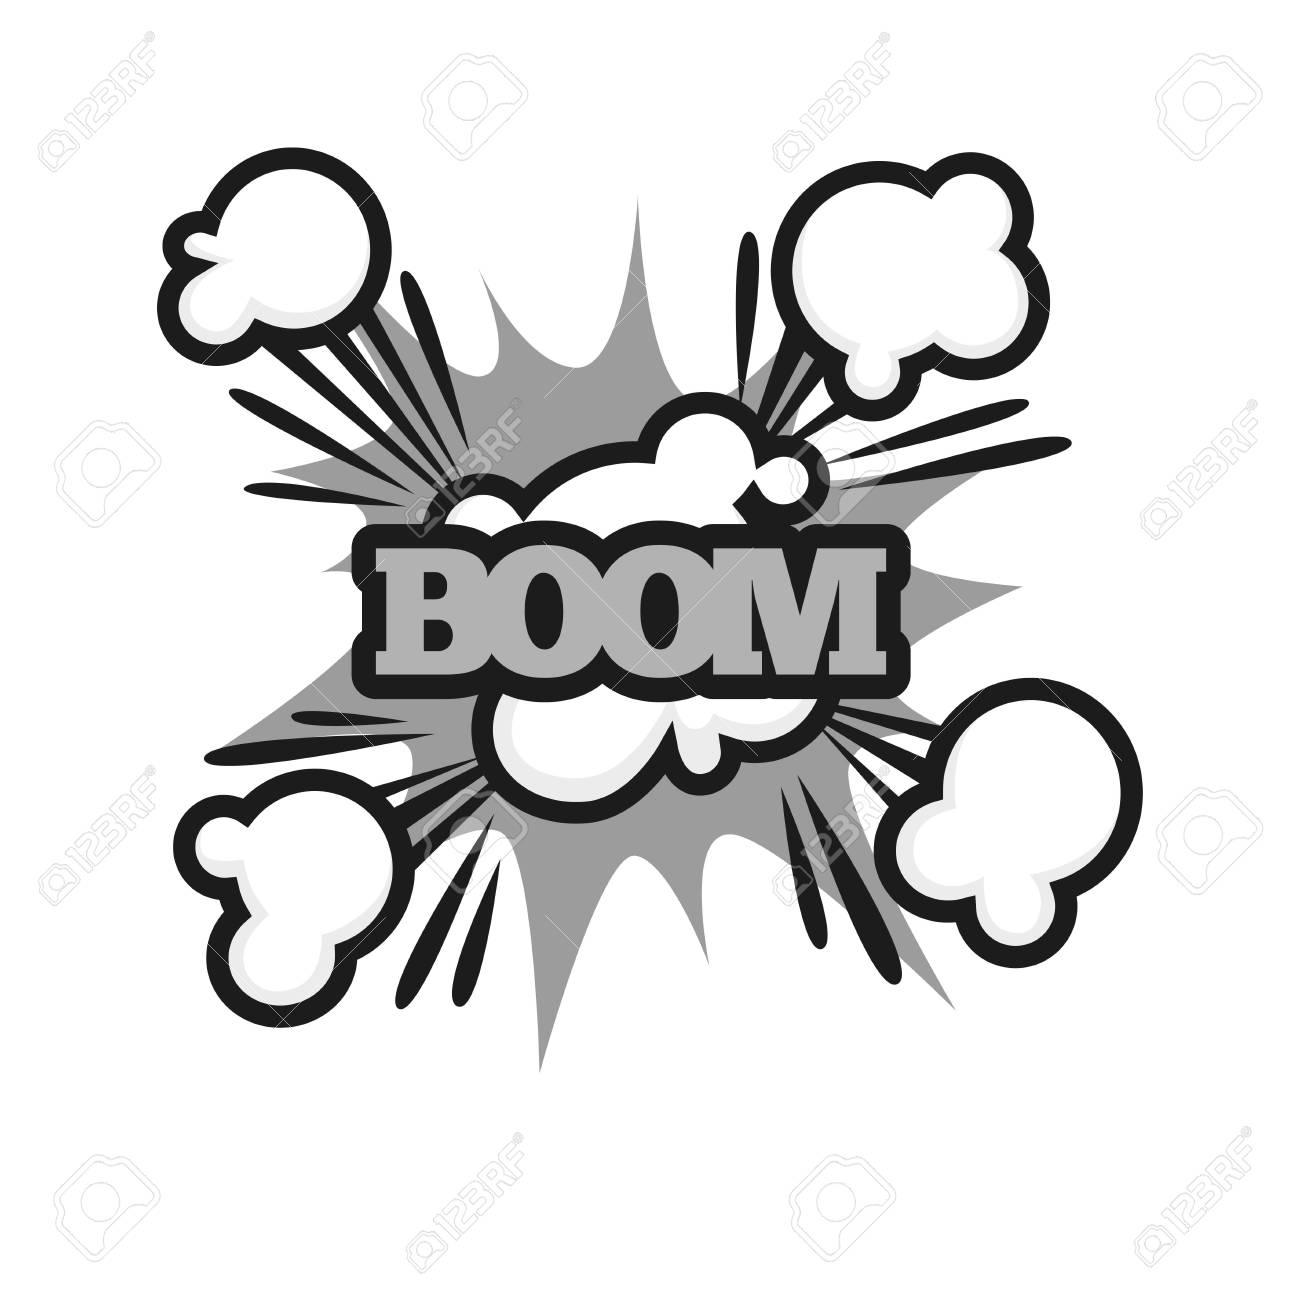 Boom lettering logo colorless vector poster in graphic design